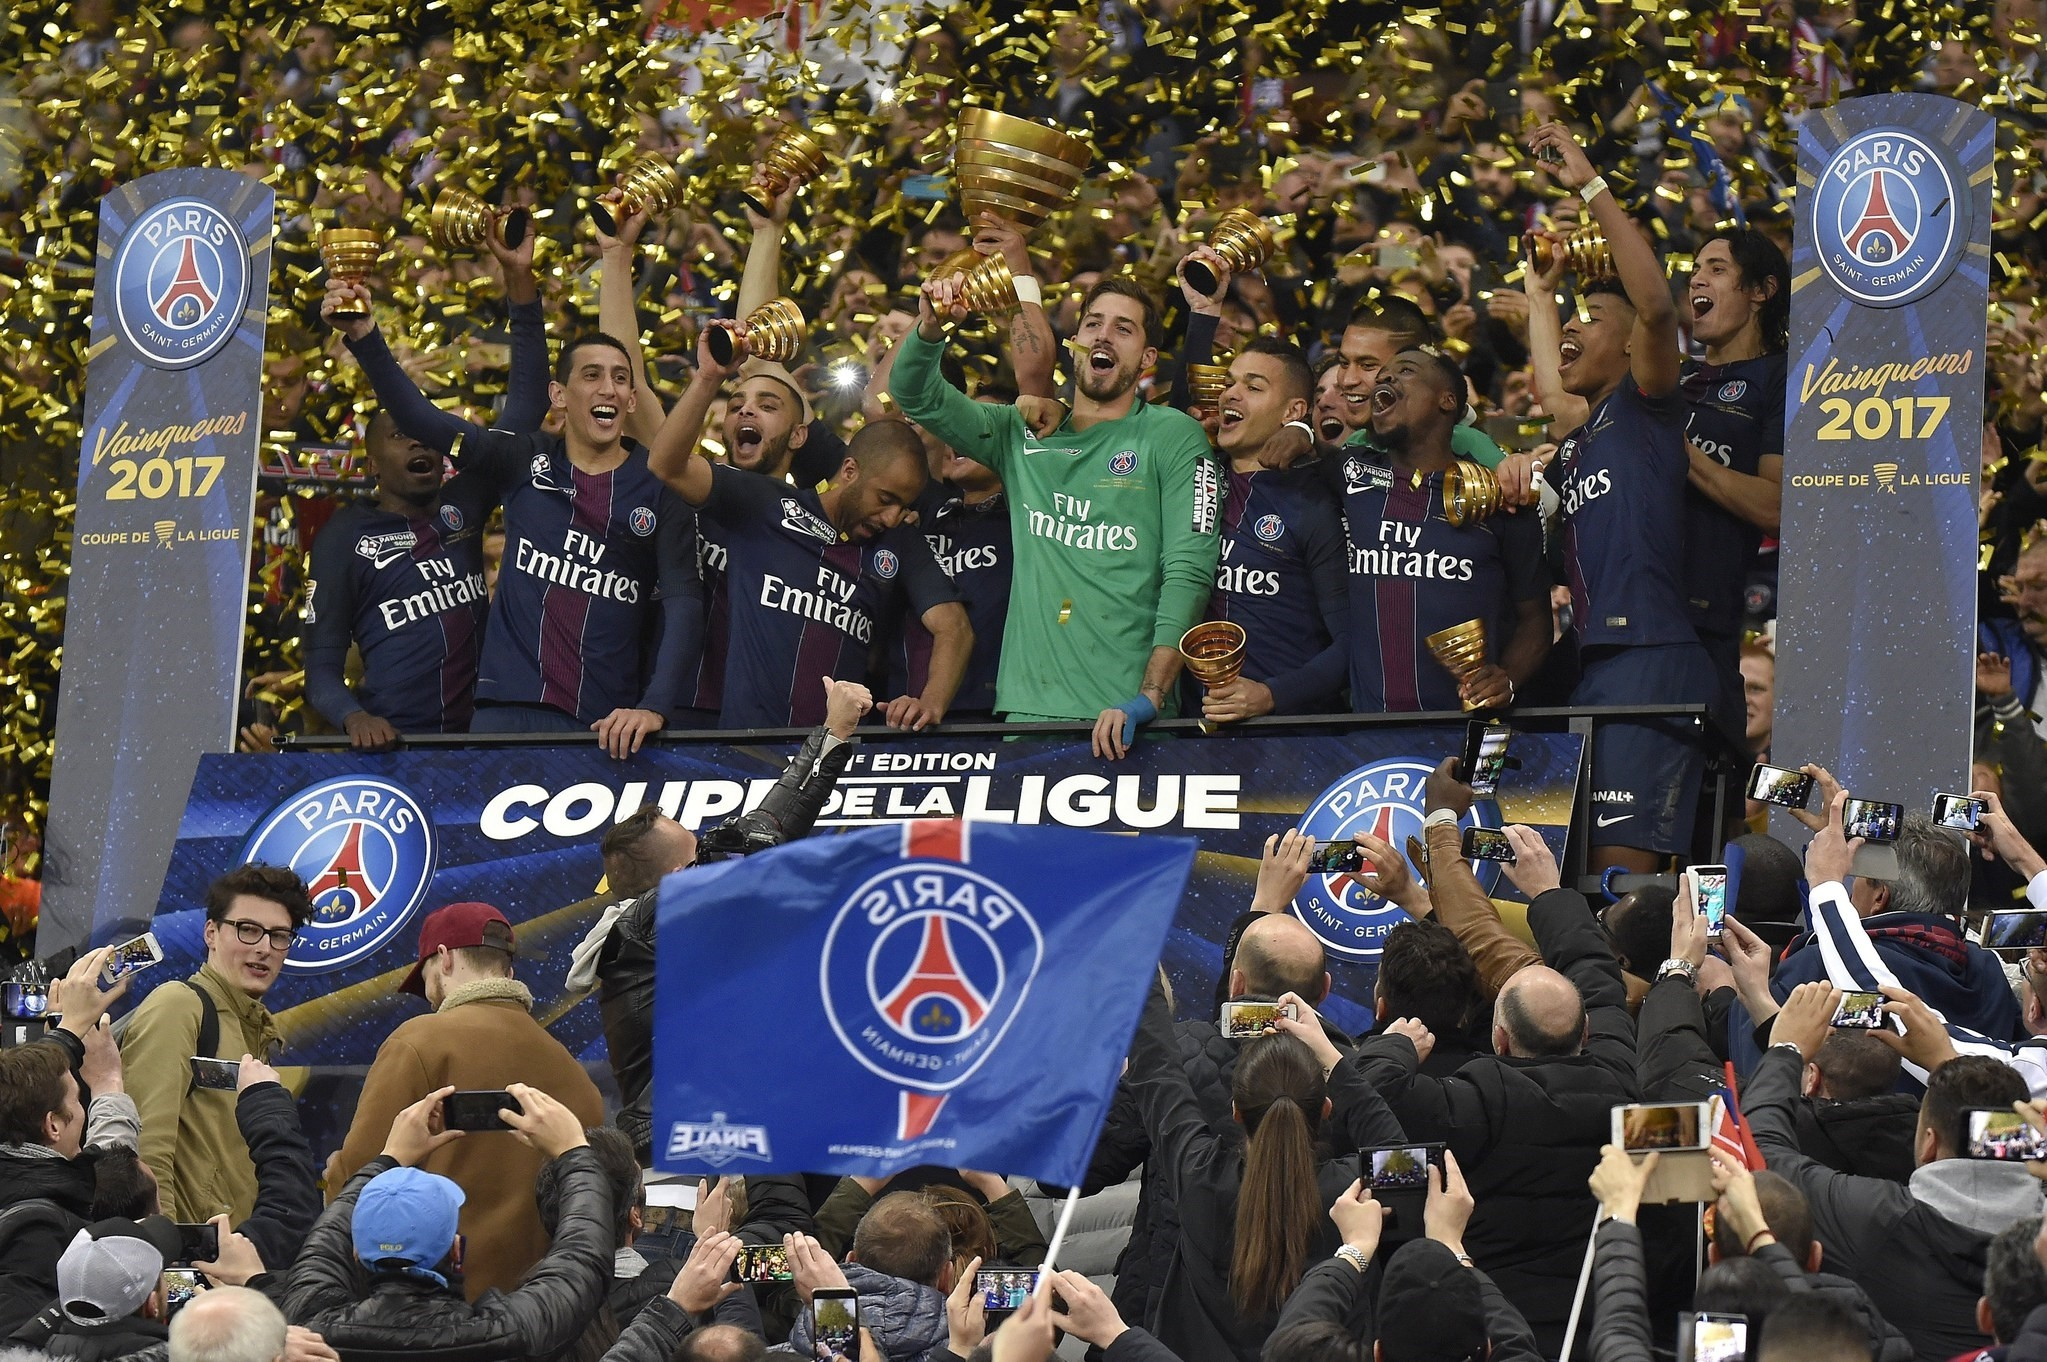 Paris Saint Germain players celebrate their win with the trophy after the the French Coupe de la Ligue final soccer match. (EPA Photo)